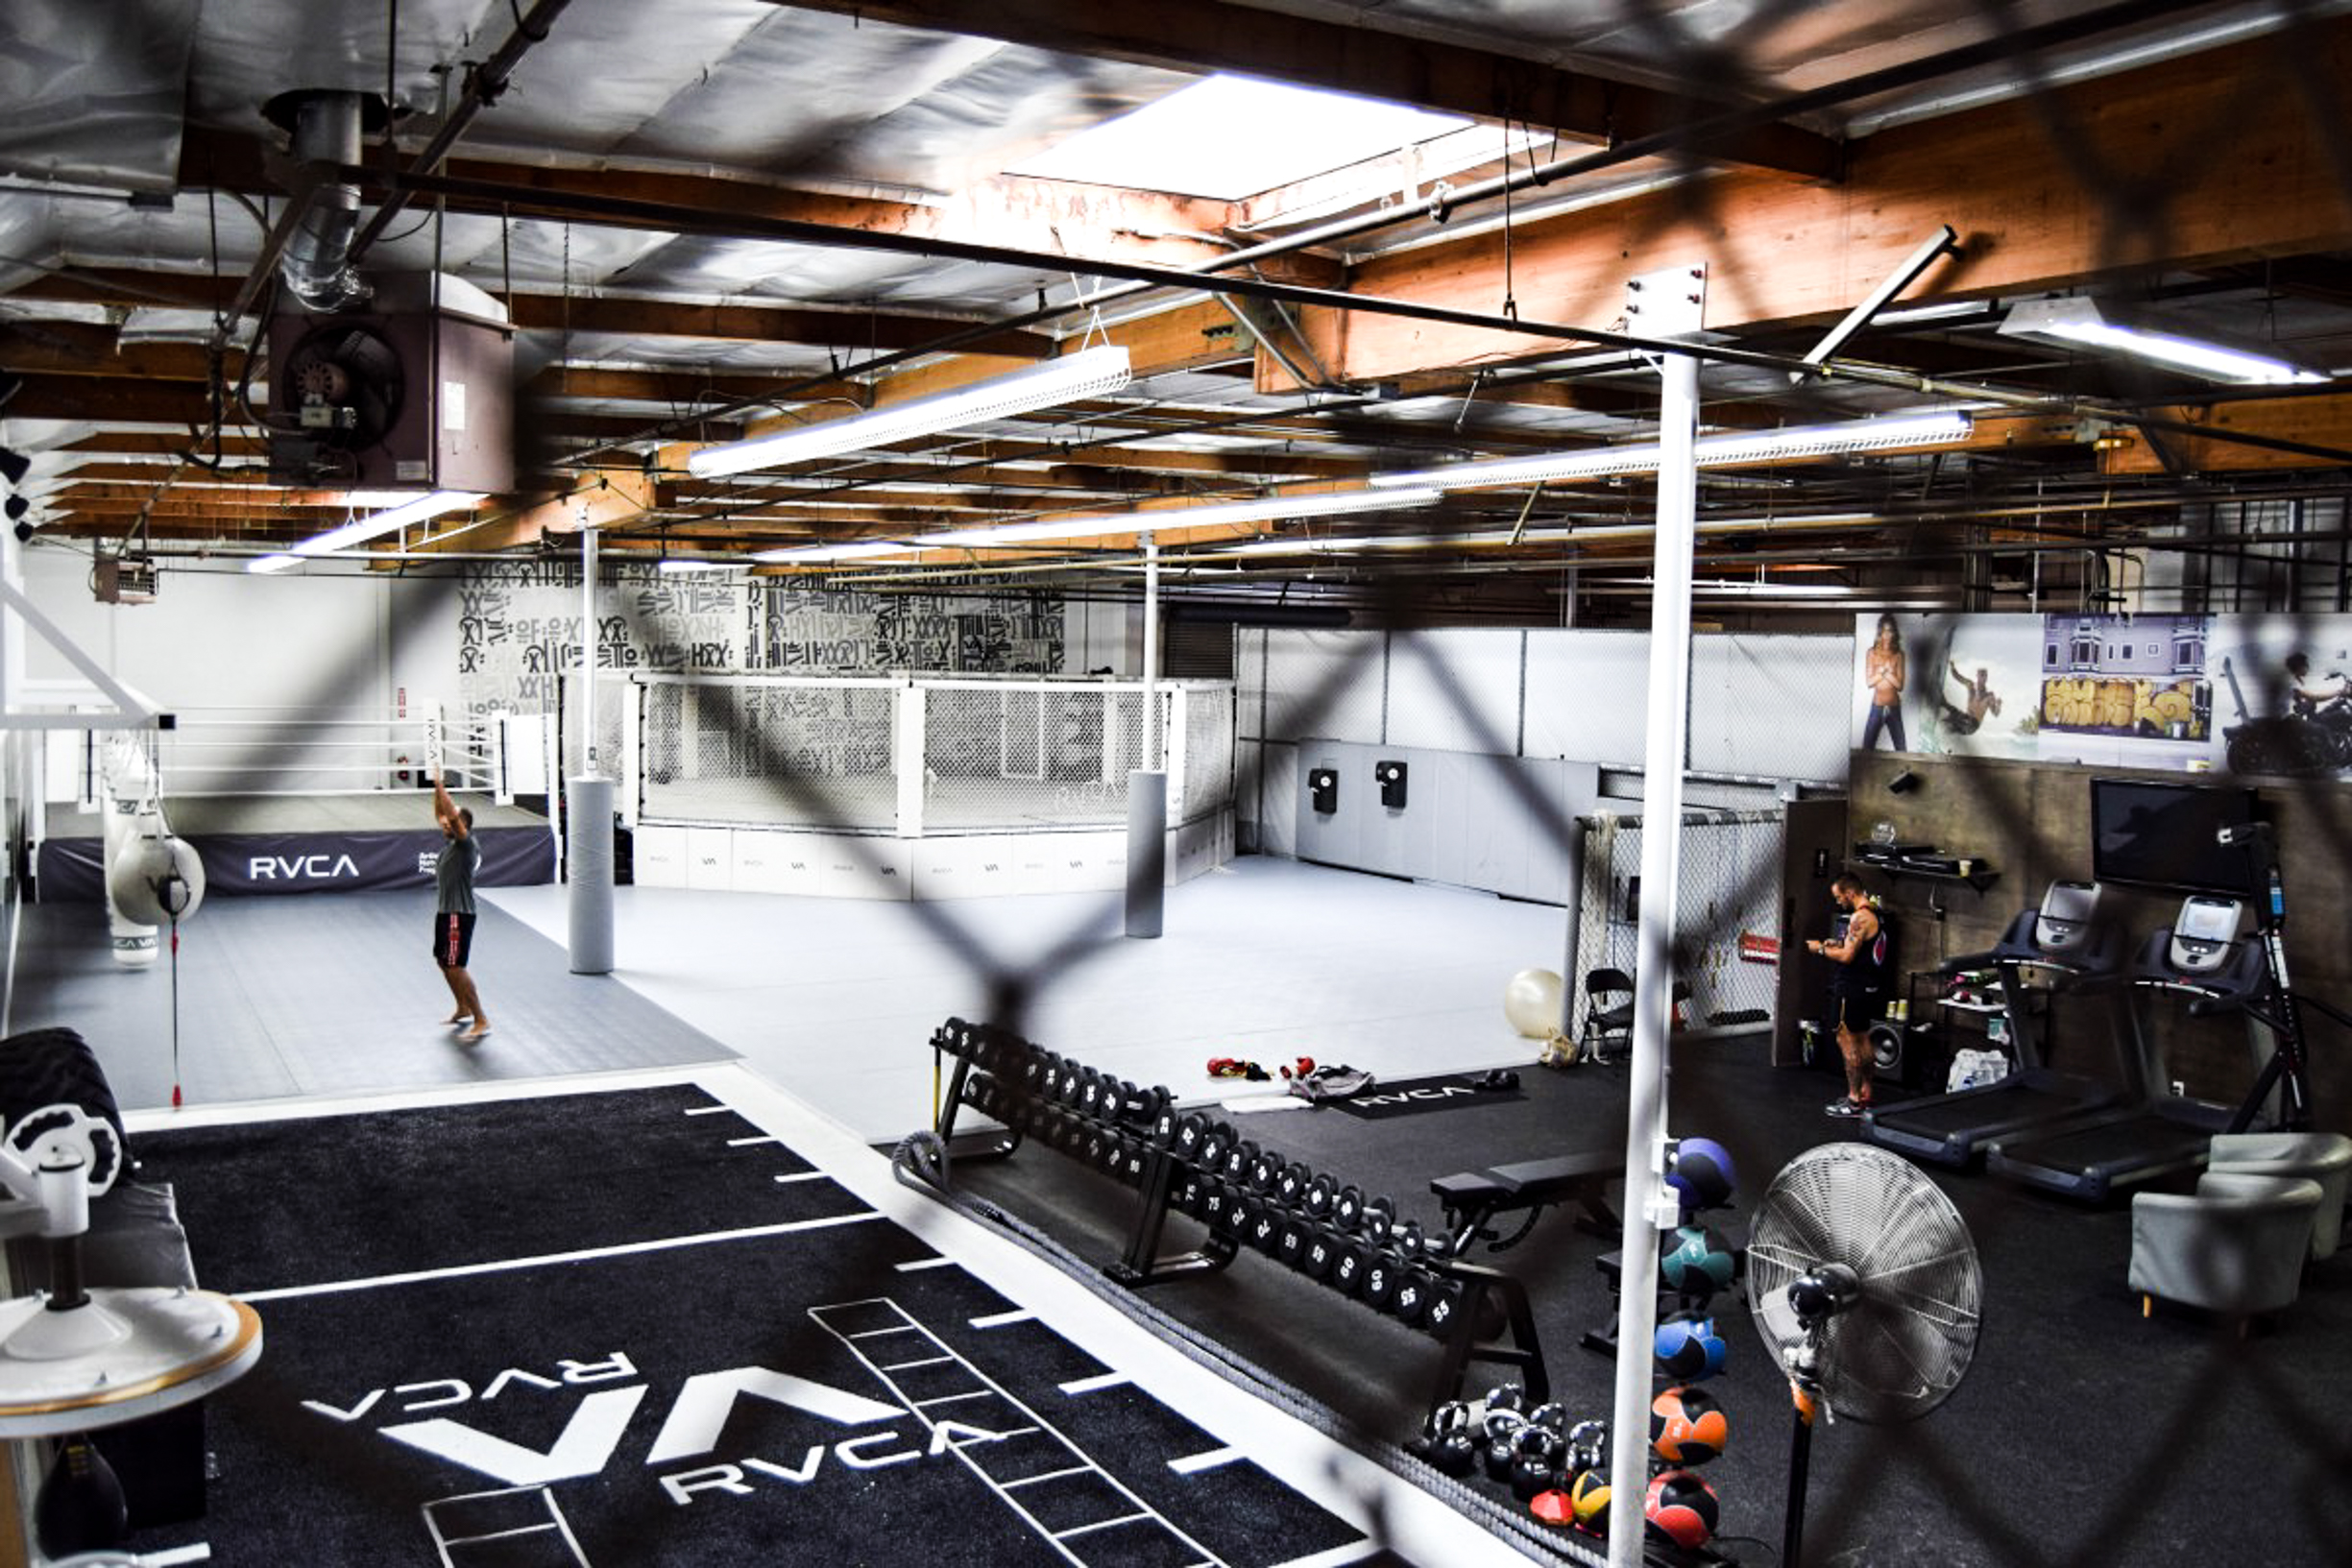 California indoor skate park with exercise equipment gym